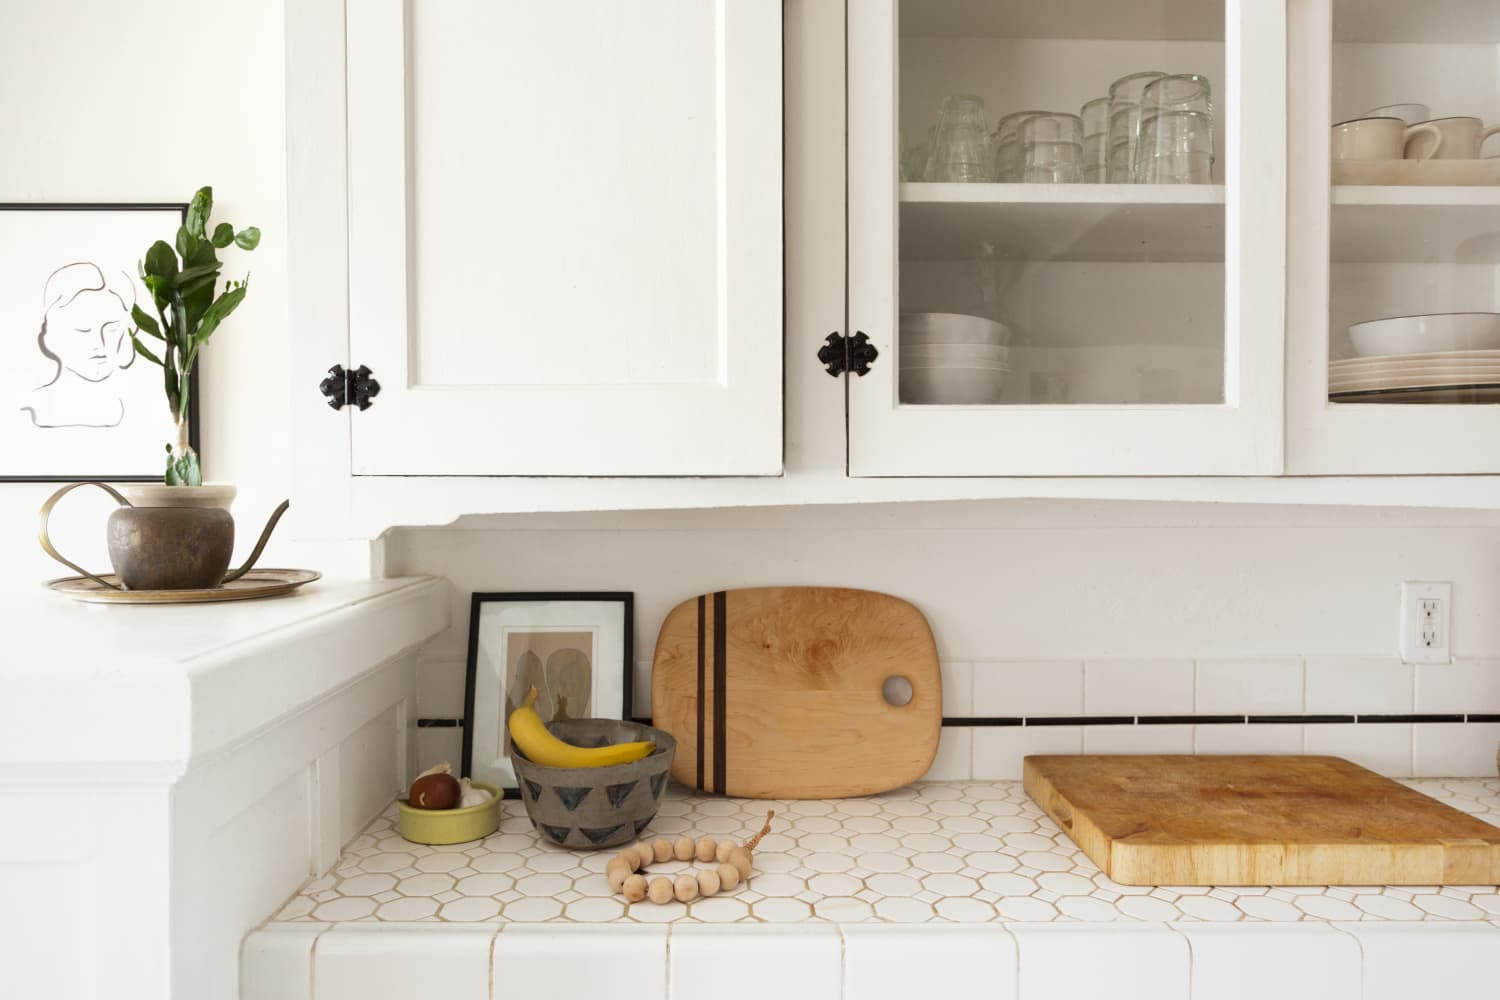 10 of the Best Fi for Rental Kitchen Problems | Kitchn Ideas For Baskets Above Kitchen Sink Window With No on